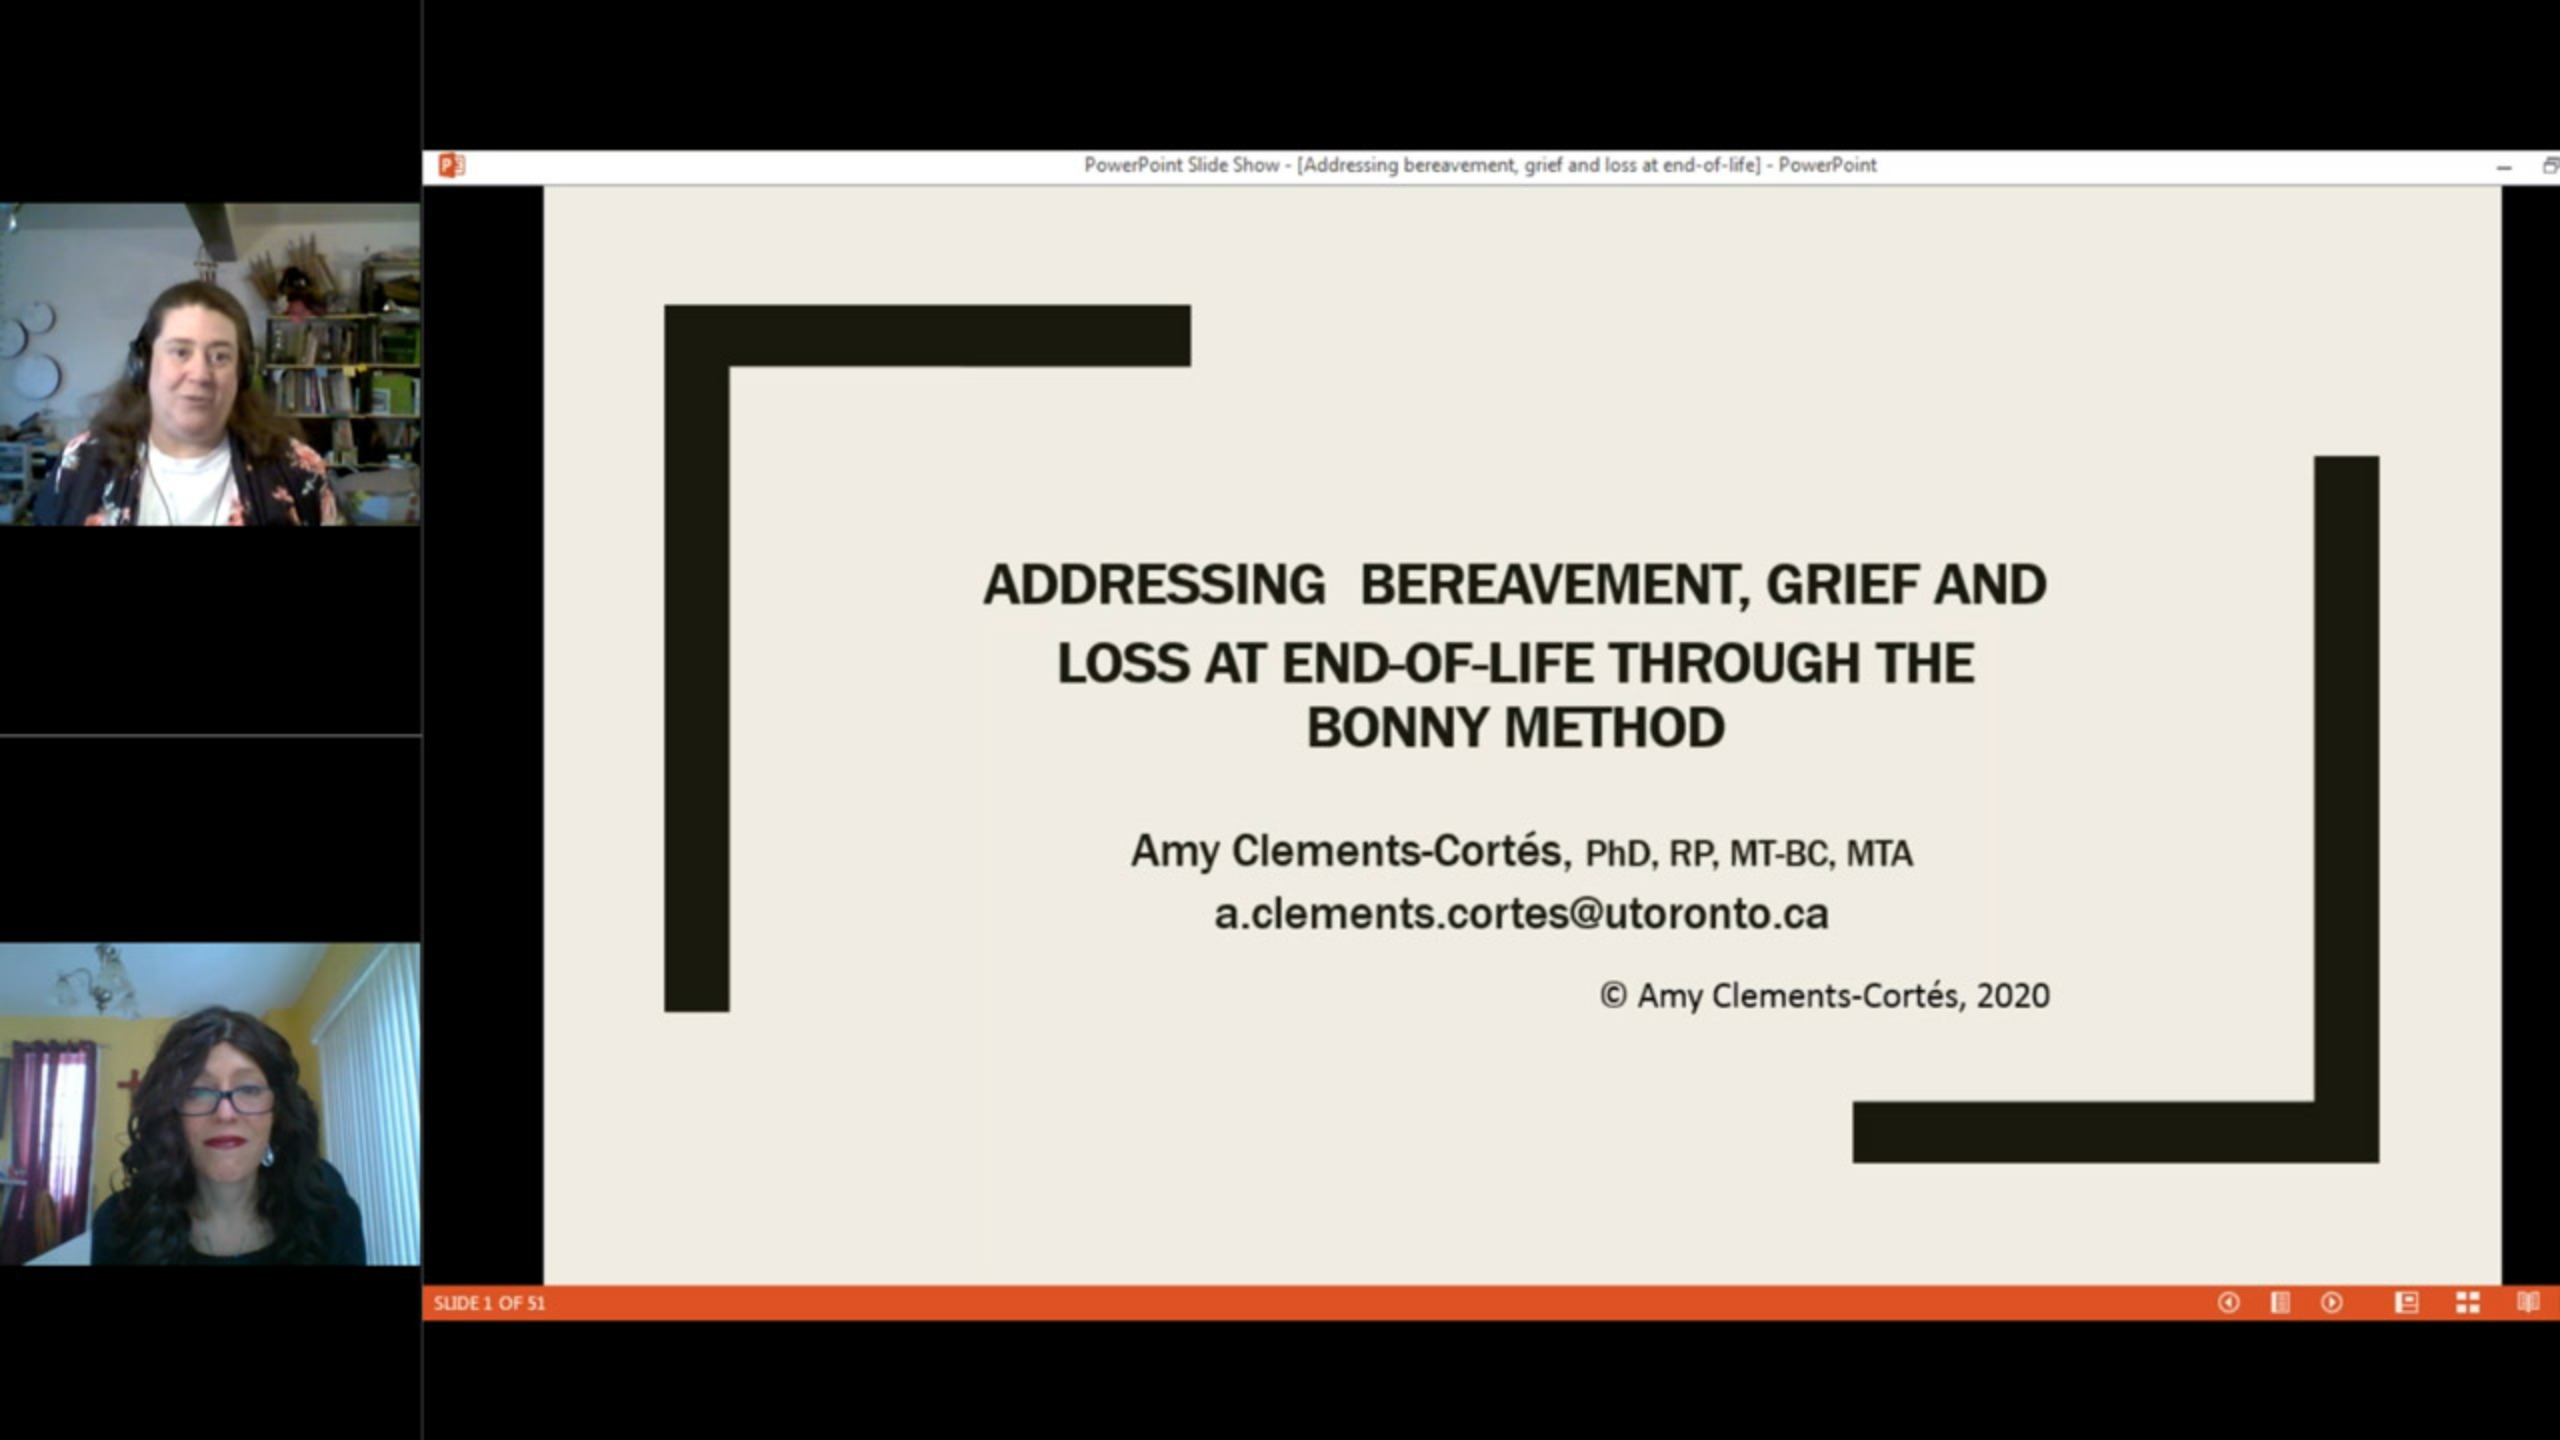 Addressing Bereavement, Grief and Loss at End-of-Life Through the Bonny Method